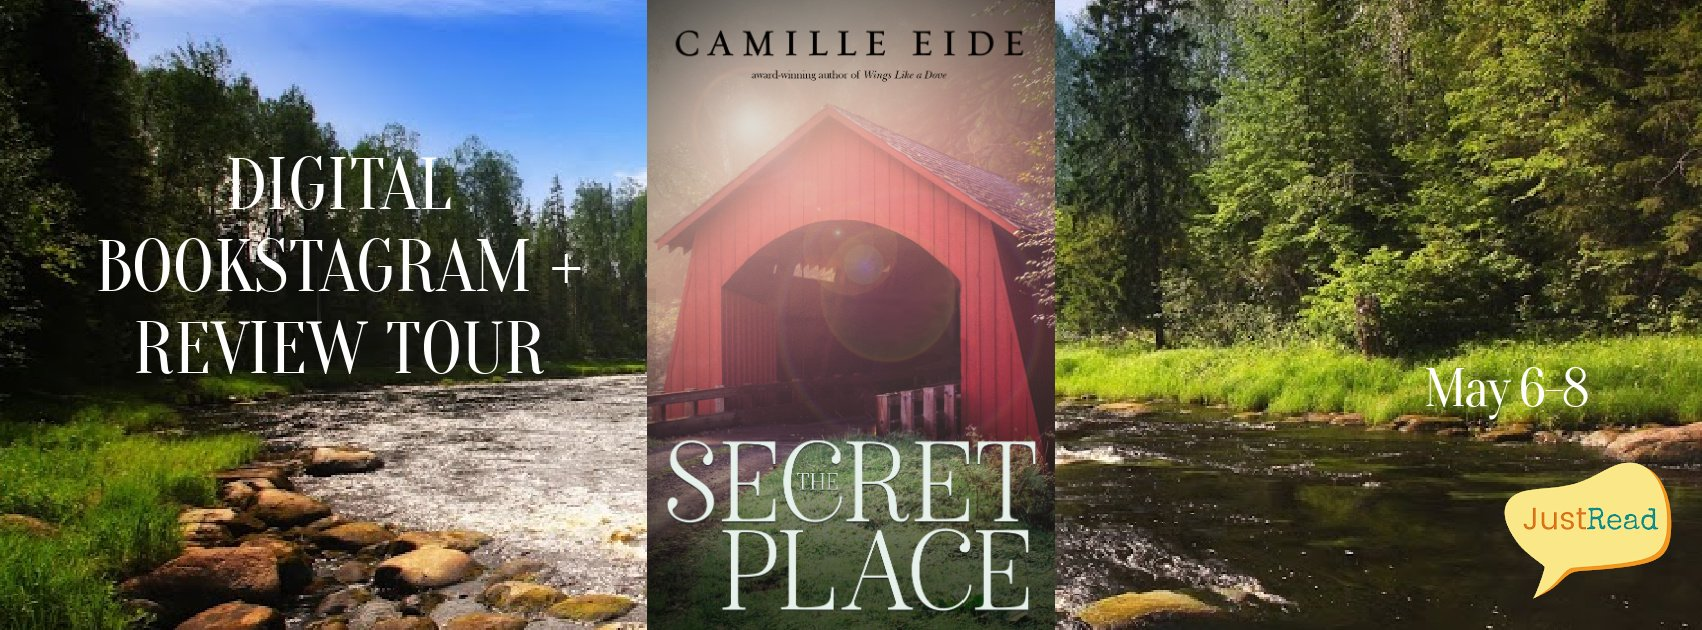 The Secret Place JustRead Digital Bookstagram + Review Tour